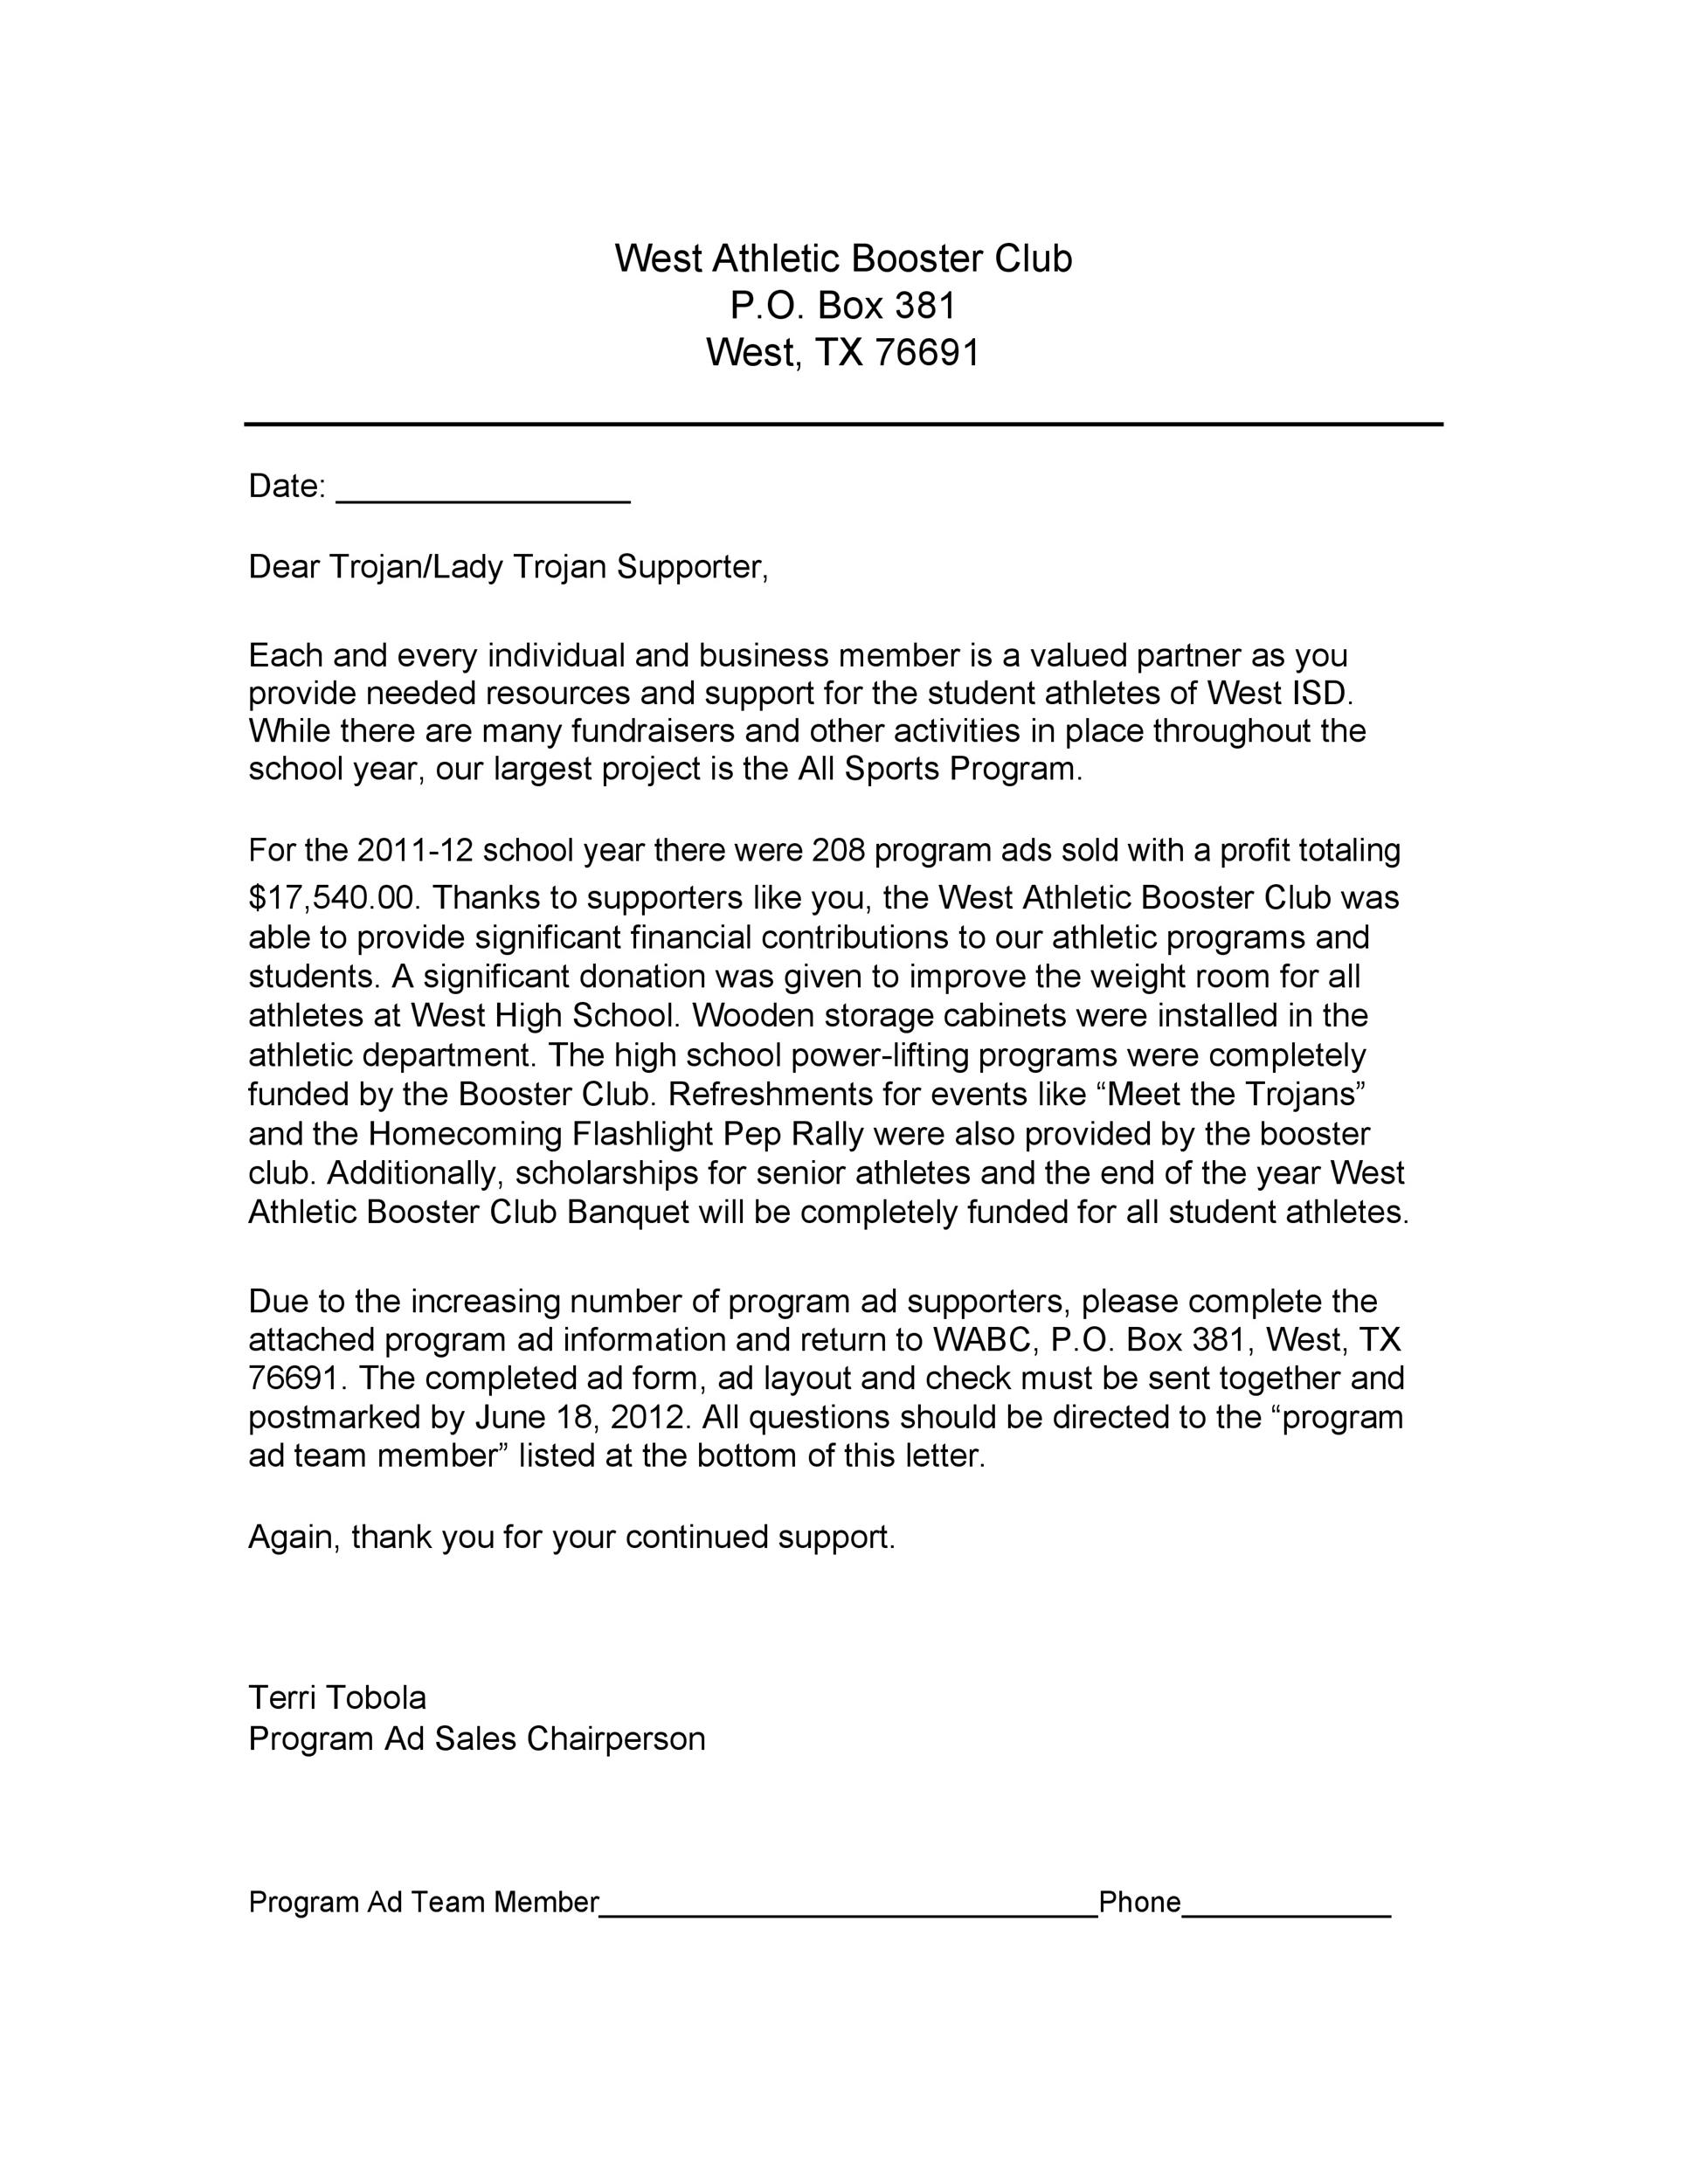 Free sales letter template 31